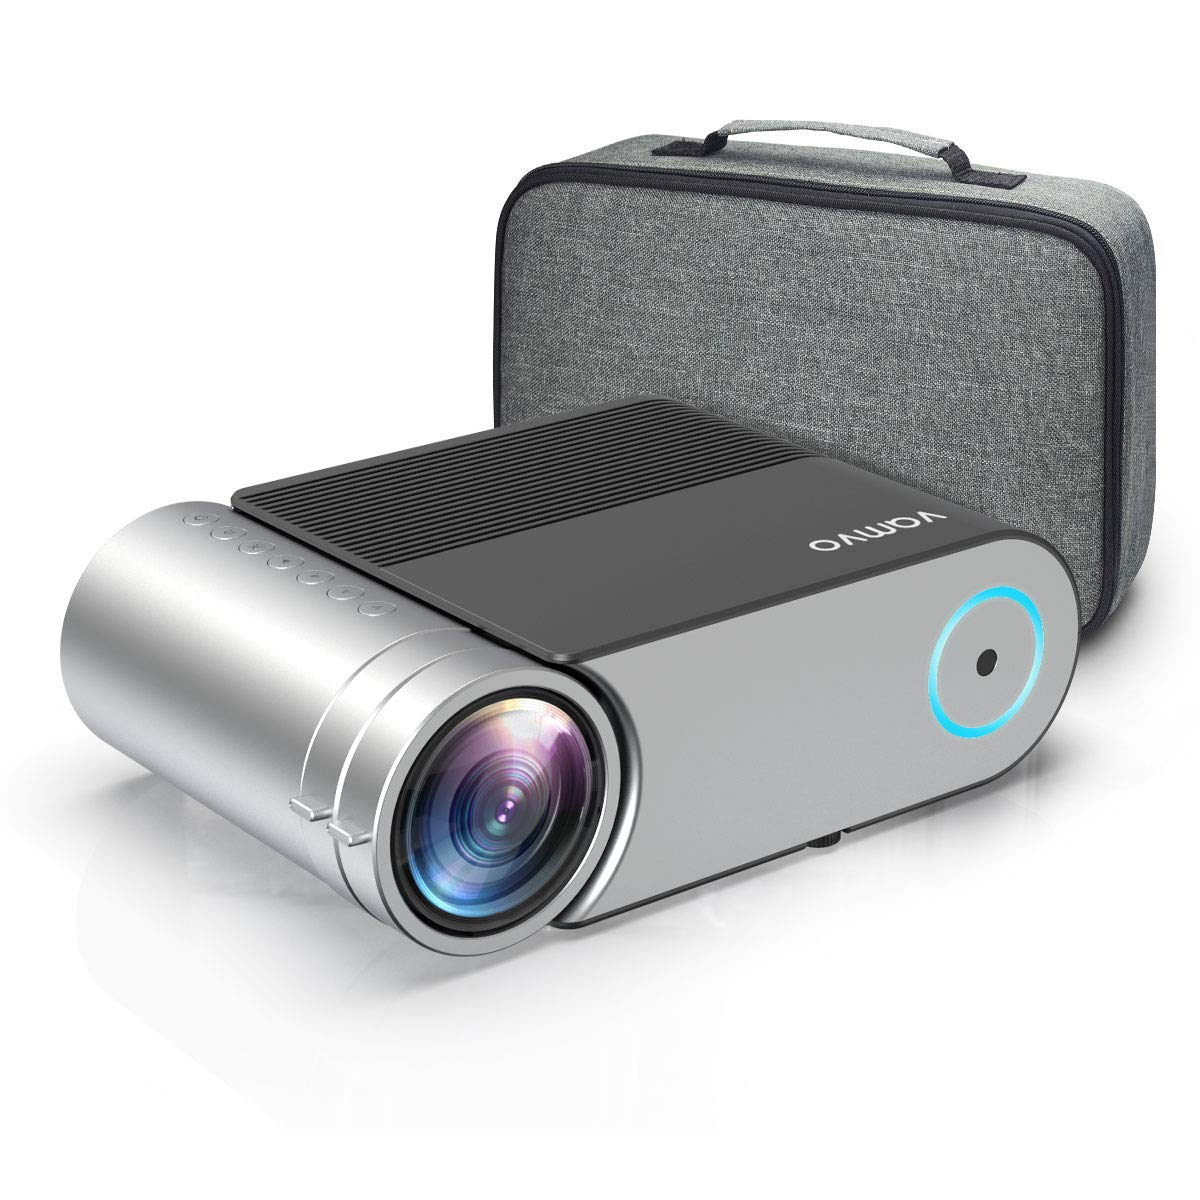 Mini Projector, Vamvo L4200 Portable Video Projector, Full HD 1080P 200'' Display Supported; Outdoor Movie Projector 3800 Lux with 50,000 Hrs, Compatible with Fire TV Stick, PS4, HDMI, VGA, AV and USB by Vamvo